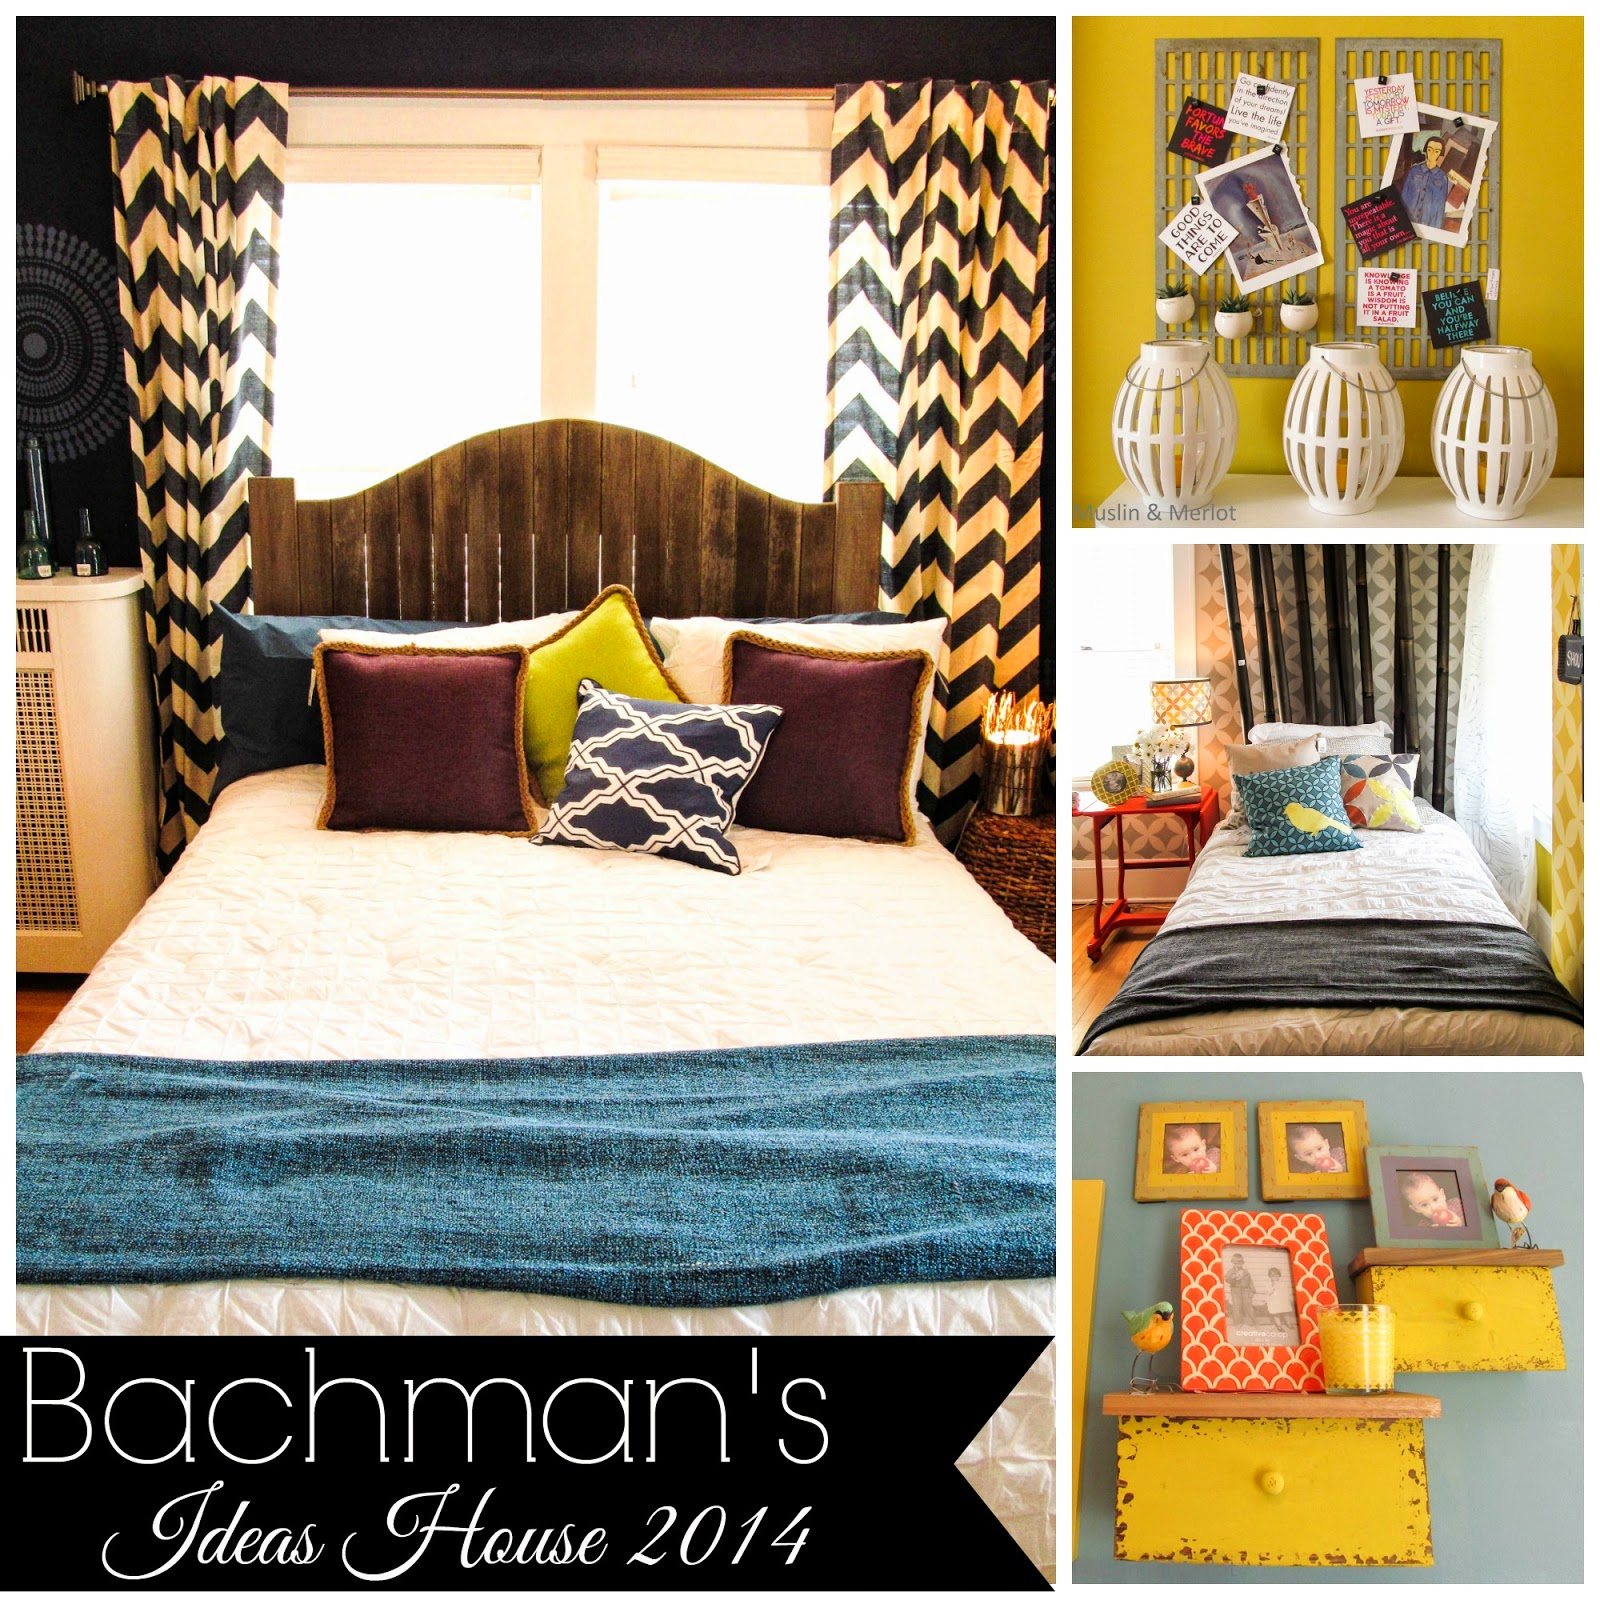 http://muslinandmerlot.blogspot.com/2014/03/bachmans-spring-ideas-house-bedrooms.html